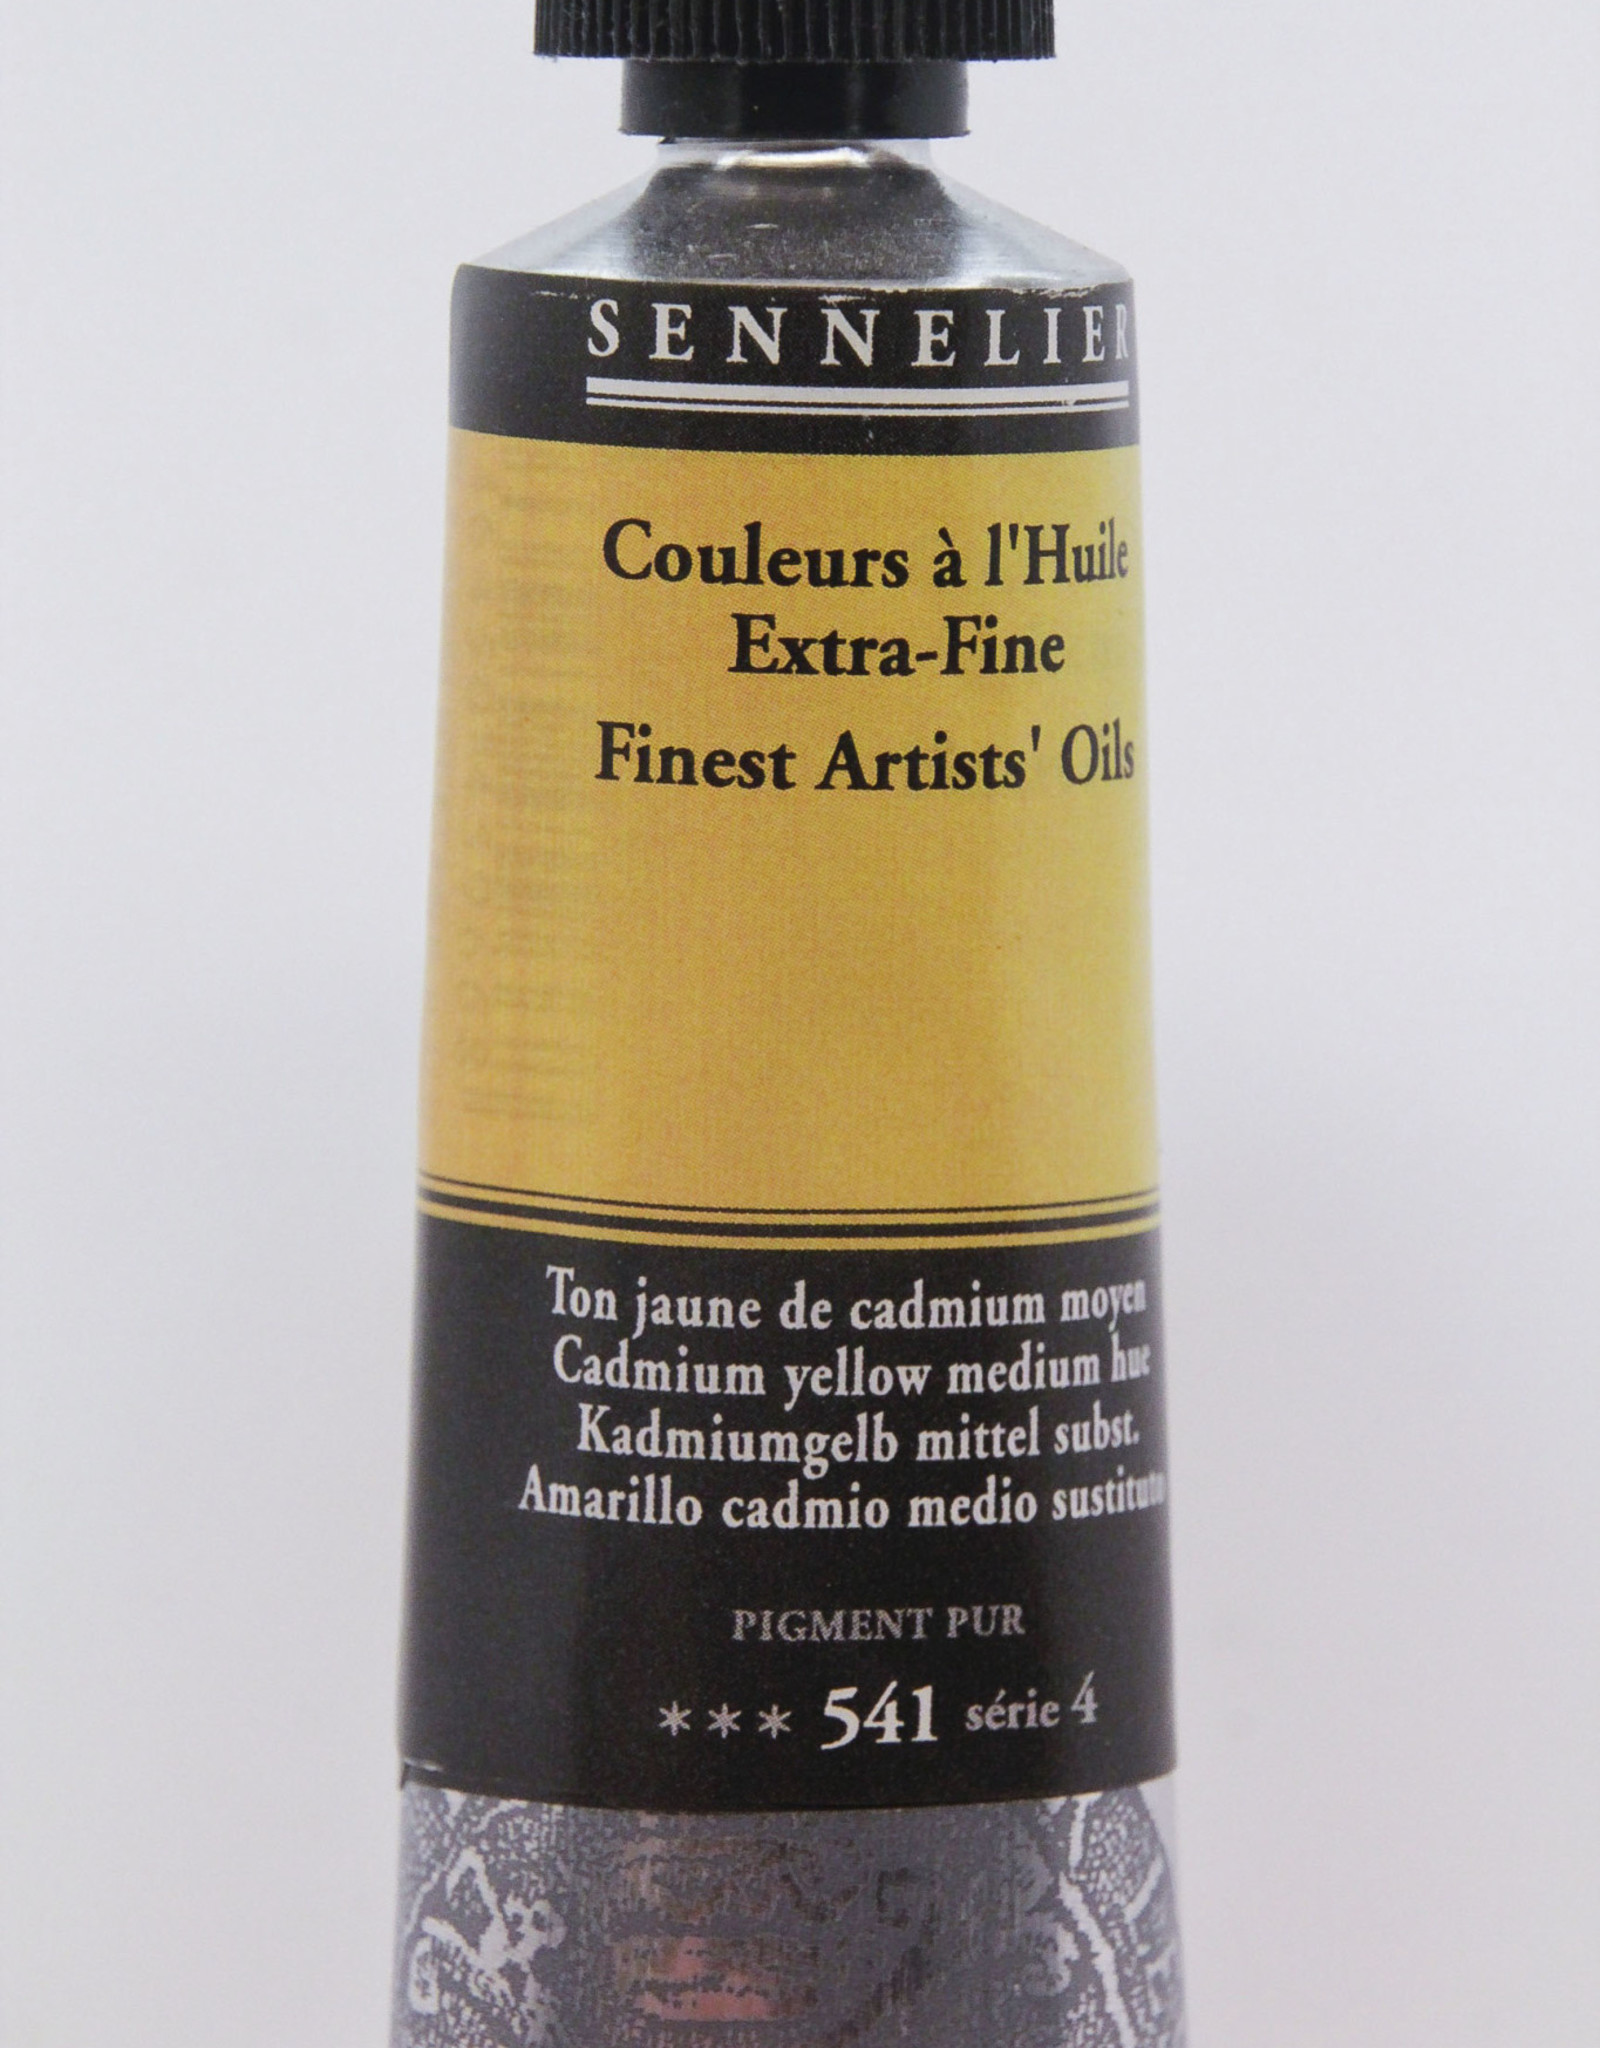 Sennelier, Fine Artists' Oil Paint, Cadmium Yellow Medium Hue, 541, 40ml Tube, Series 4